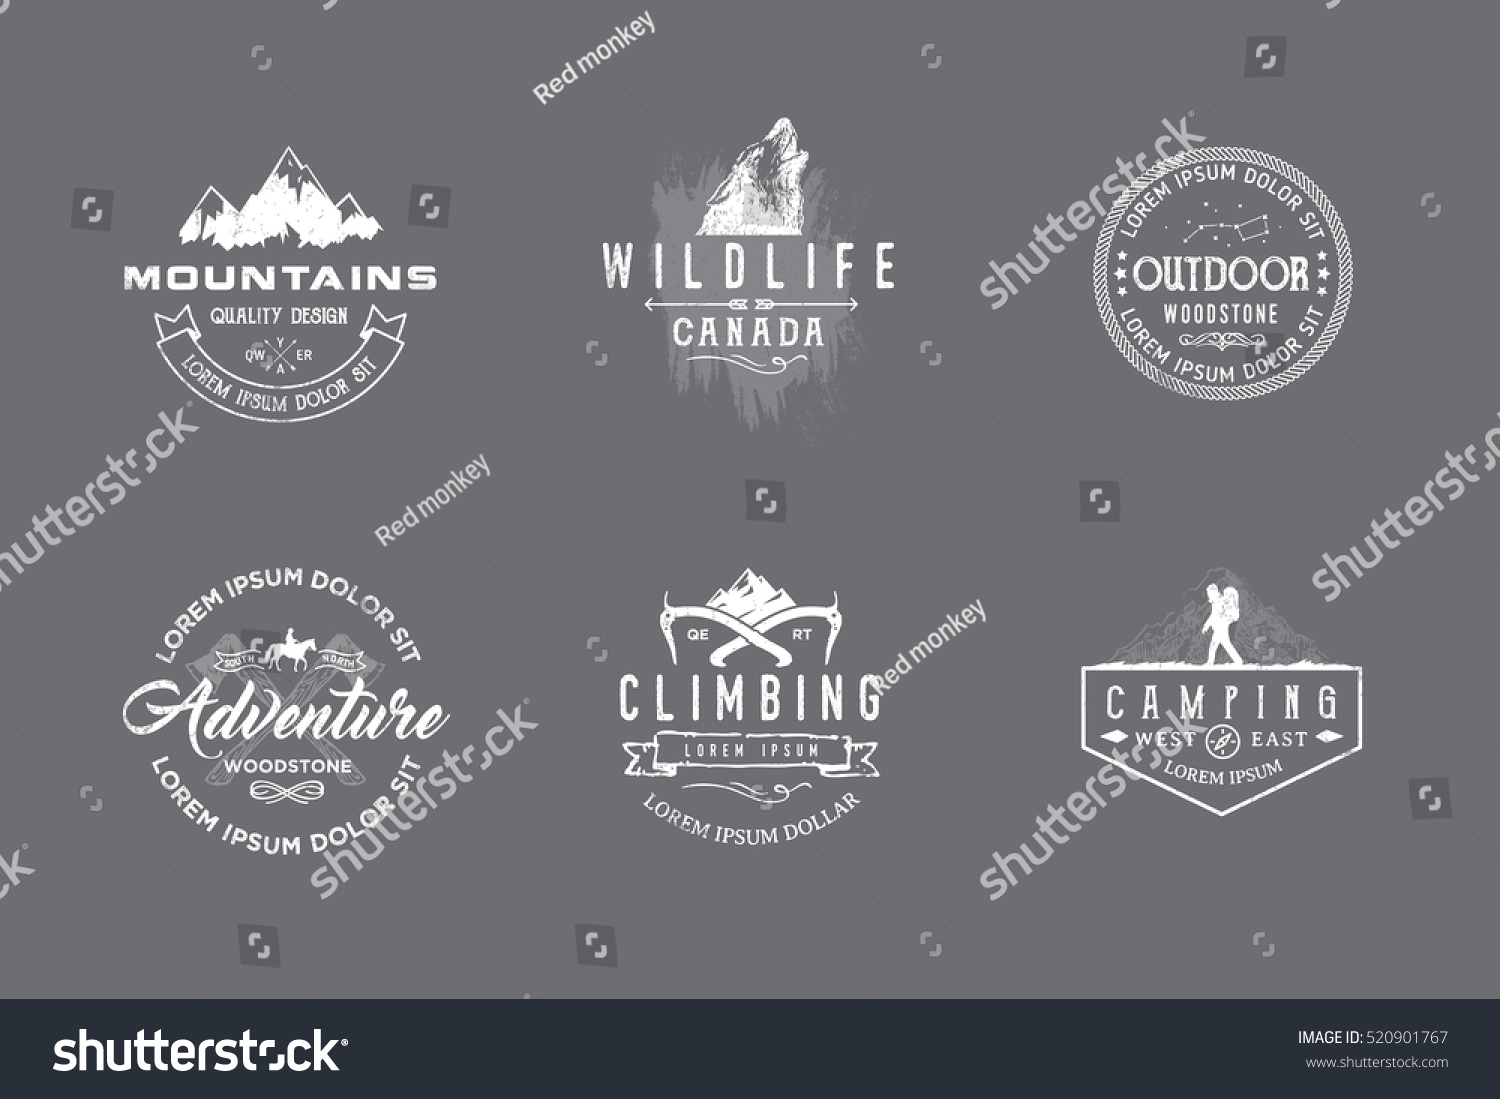 Set of premium labels on the themes of wildlife nature hunting travel wild nature climbing camping life in the mountains survival Retro vintage casual design #15